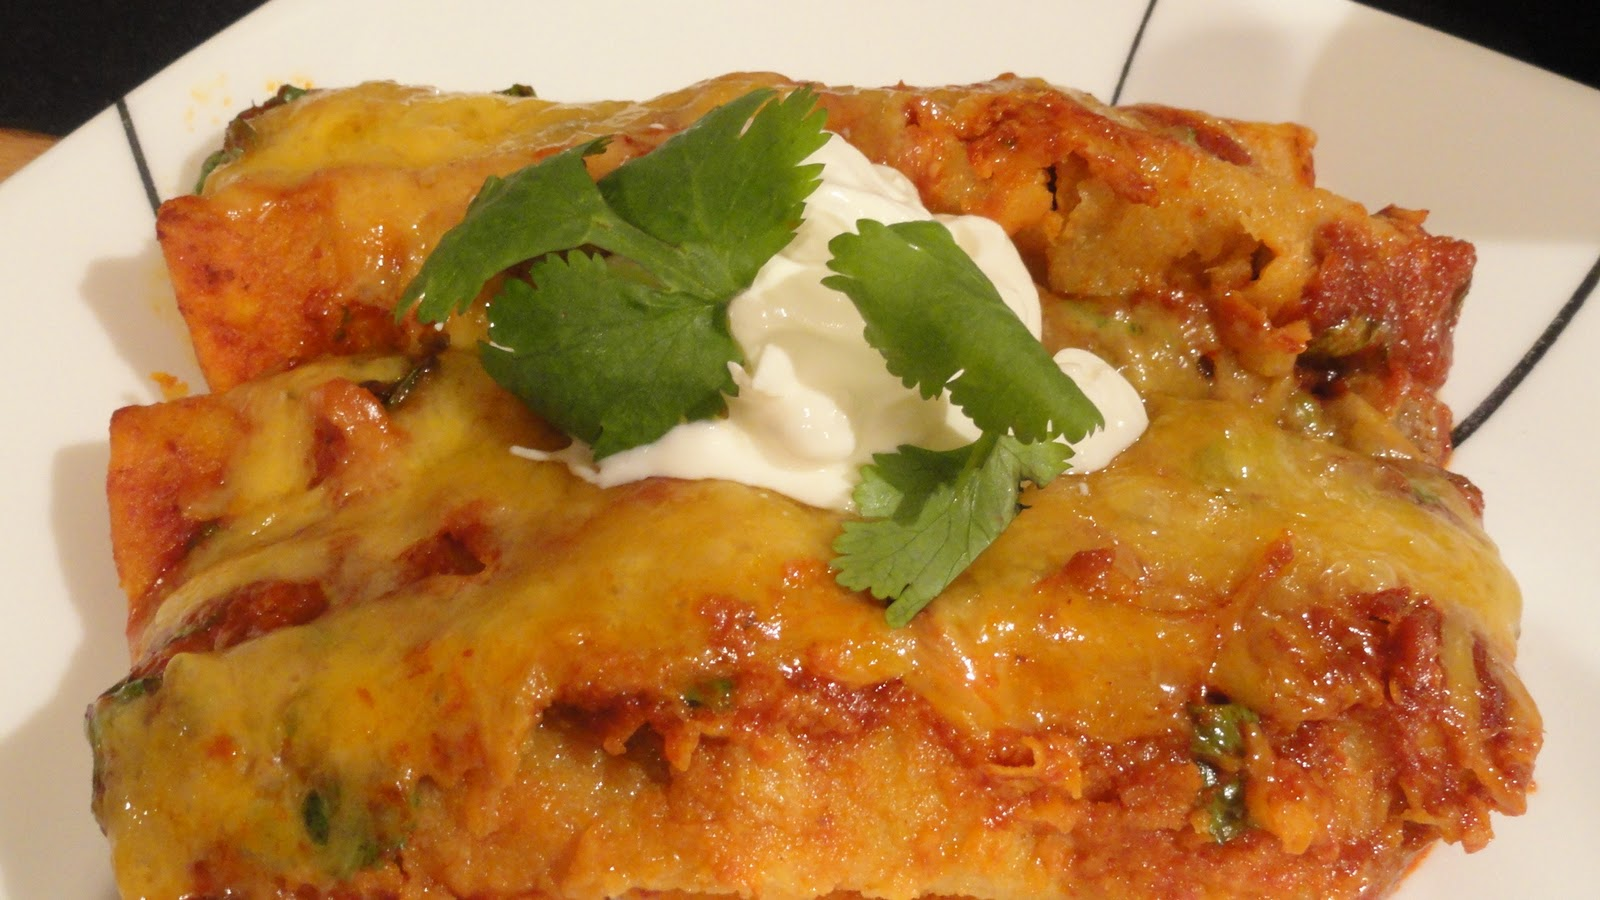 The On-Call Cook: Beef Enchiladas